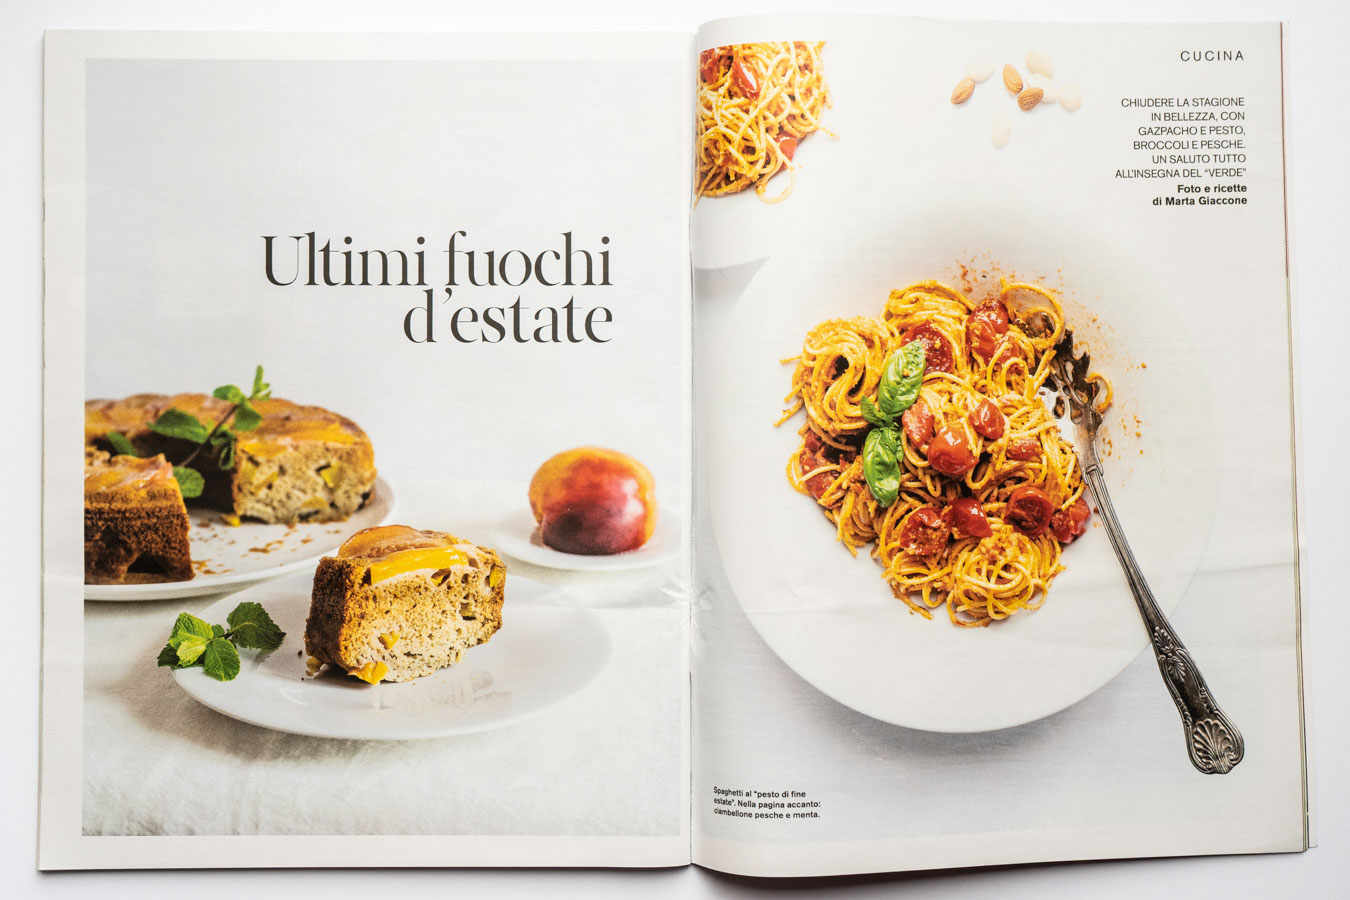 Food editorial on D di Repubblica (Sept 7th, 2019) by Marta Giaccone